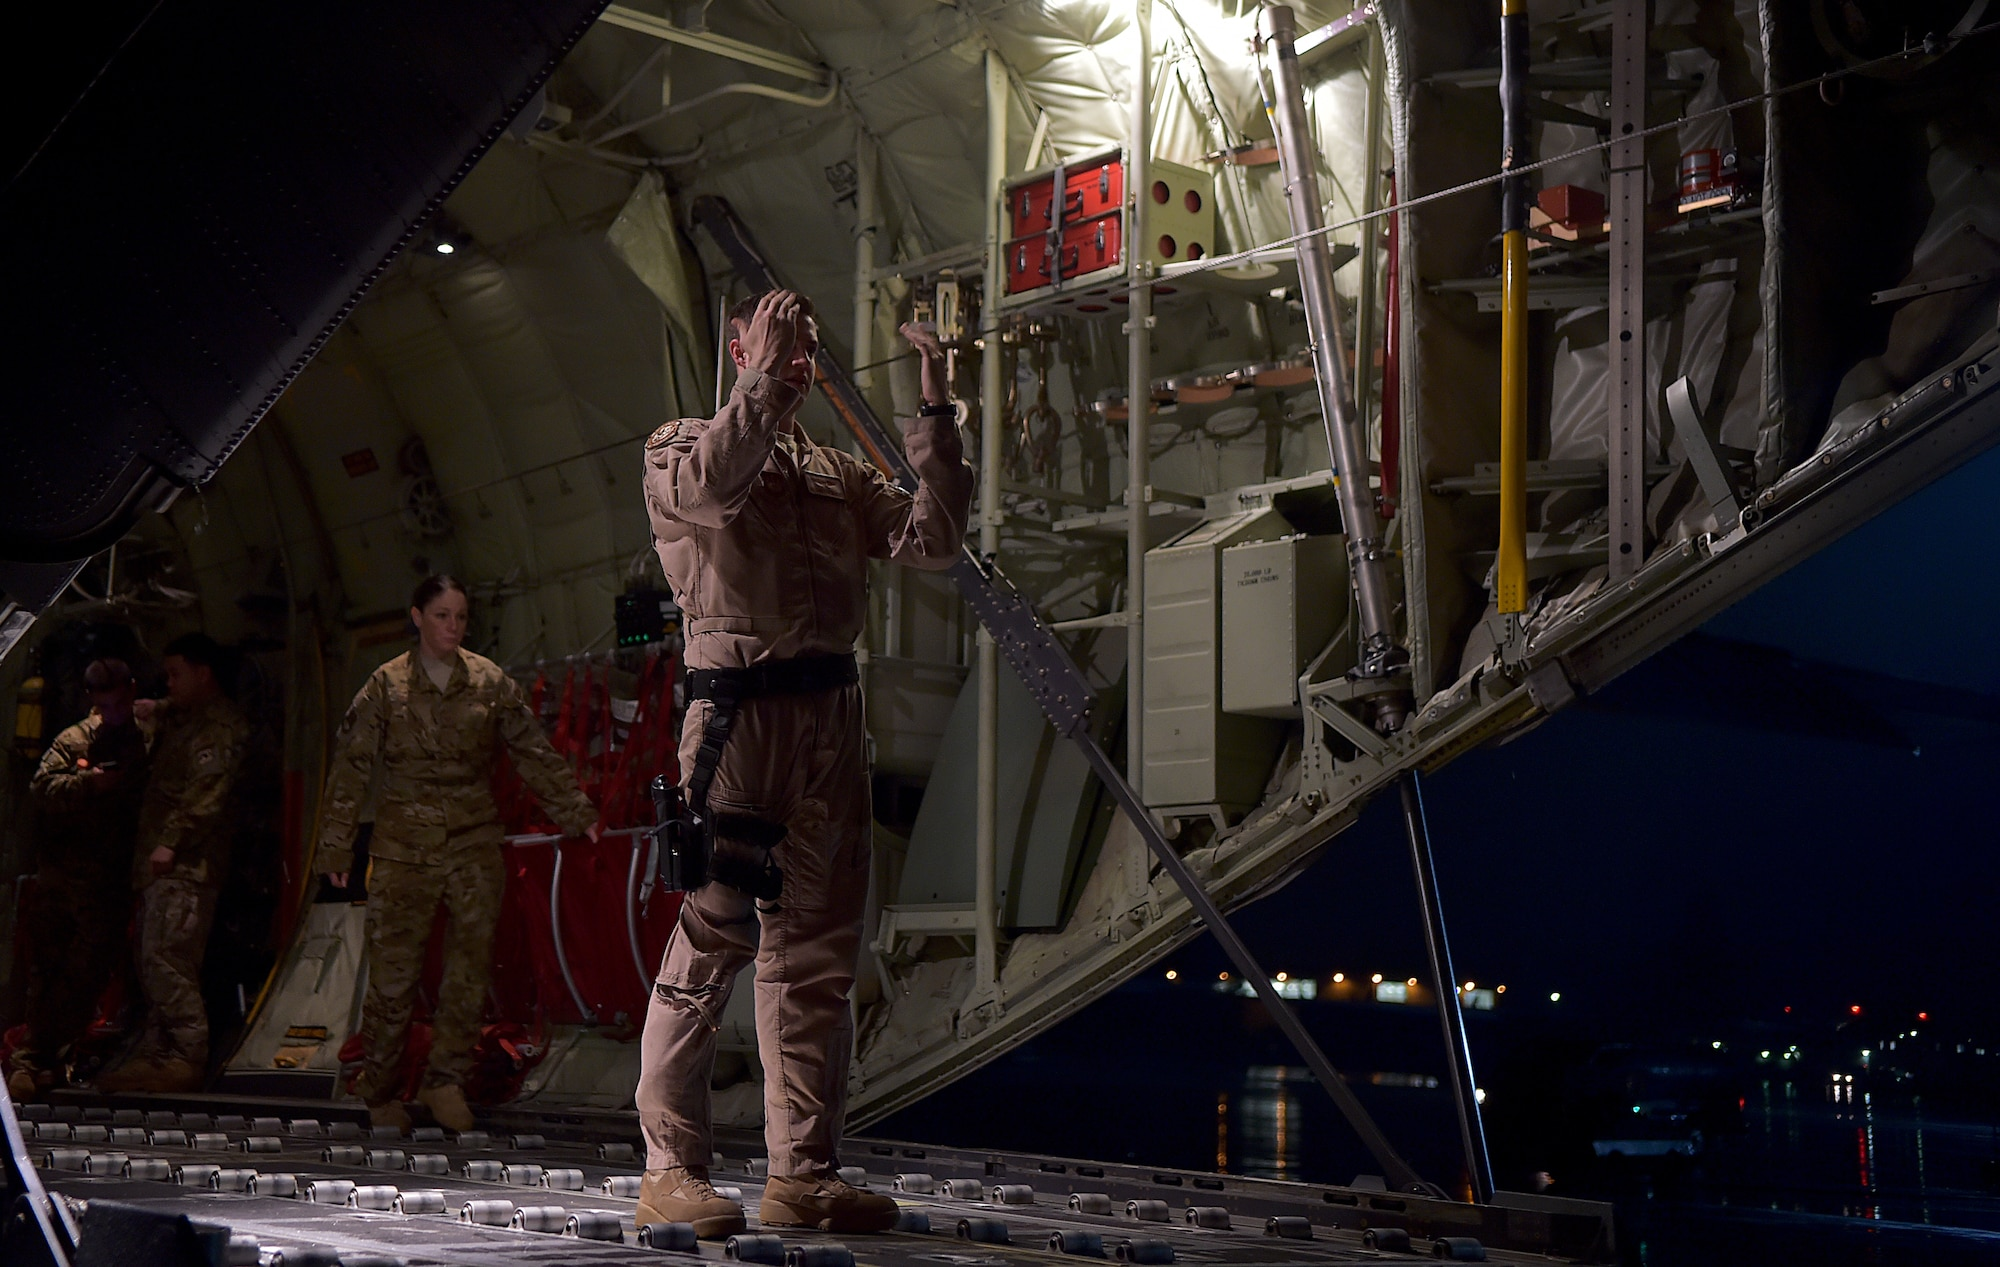 Senior Airman Christian McDevitt leads a cargo loader to a C-130-J Super Hercules prior to a mission in support of the Ebola virus epidemic, Oct. 7, 2014, at Ramstein Air Base, Germany. As the Ebola outbreak becomes a potential global threat, U.S. Africa Command is working in support of the U.S. Agency for International Development, the lead federal agency, as part of a comprehensive U.S. government effort to respond to and contain the outbreak of the Ebola virus in West Africa as quickly as possible. This was the first C-130J flight launched from Ramstein AB to Monrovia, Liberia in support of Operation United Assistance. McDevitt is a load master with the 37th Airlift Squadron. (U.S. Air Force photo/Staff Sgt. Sara Keller)